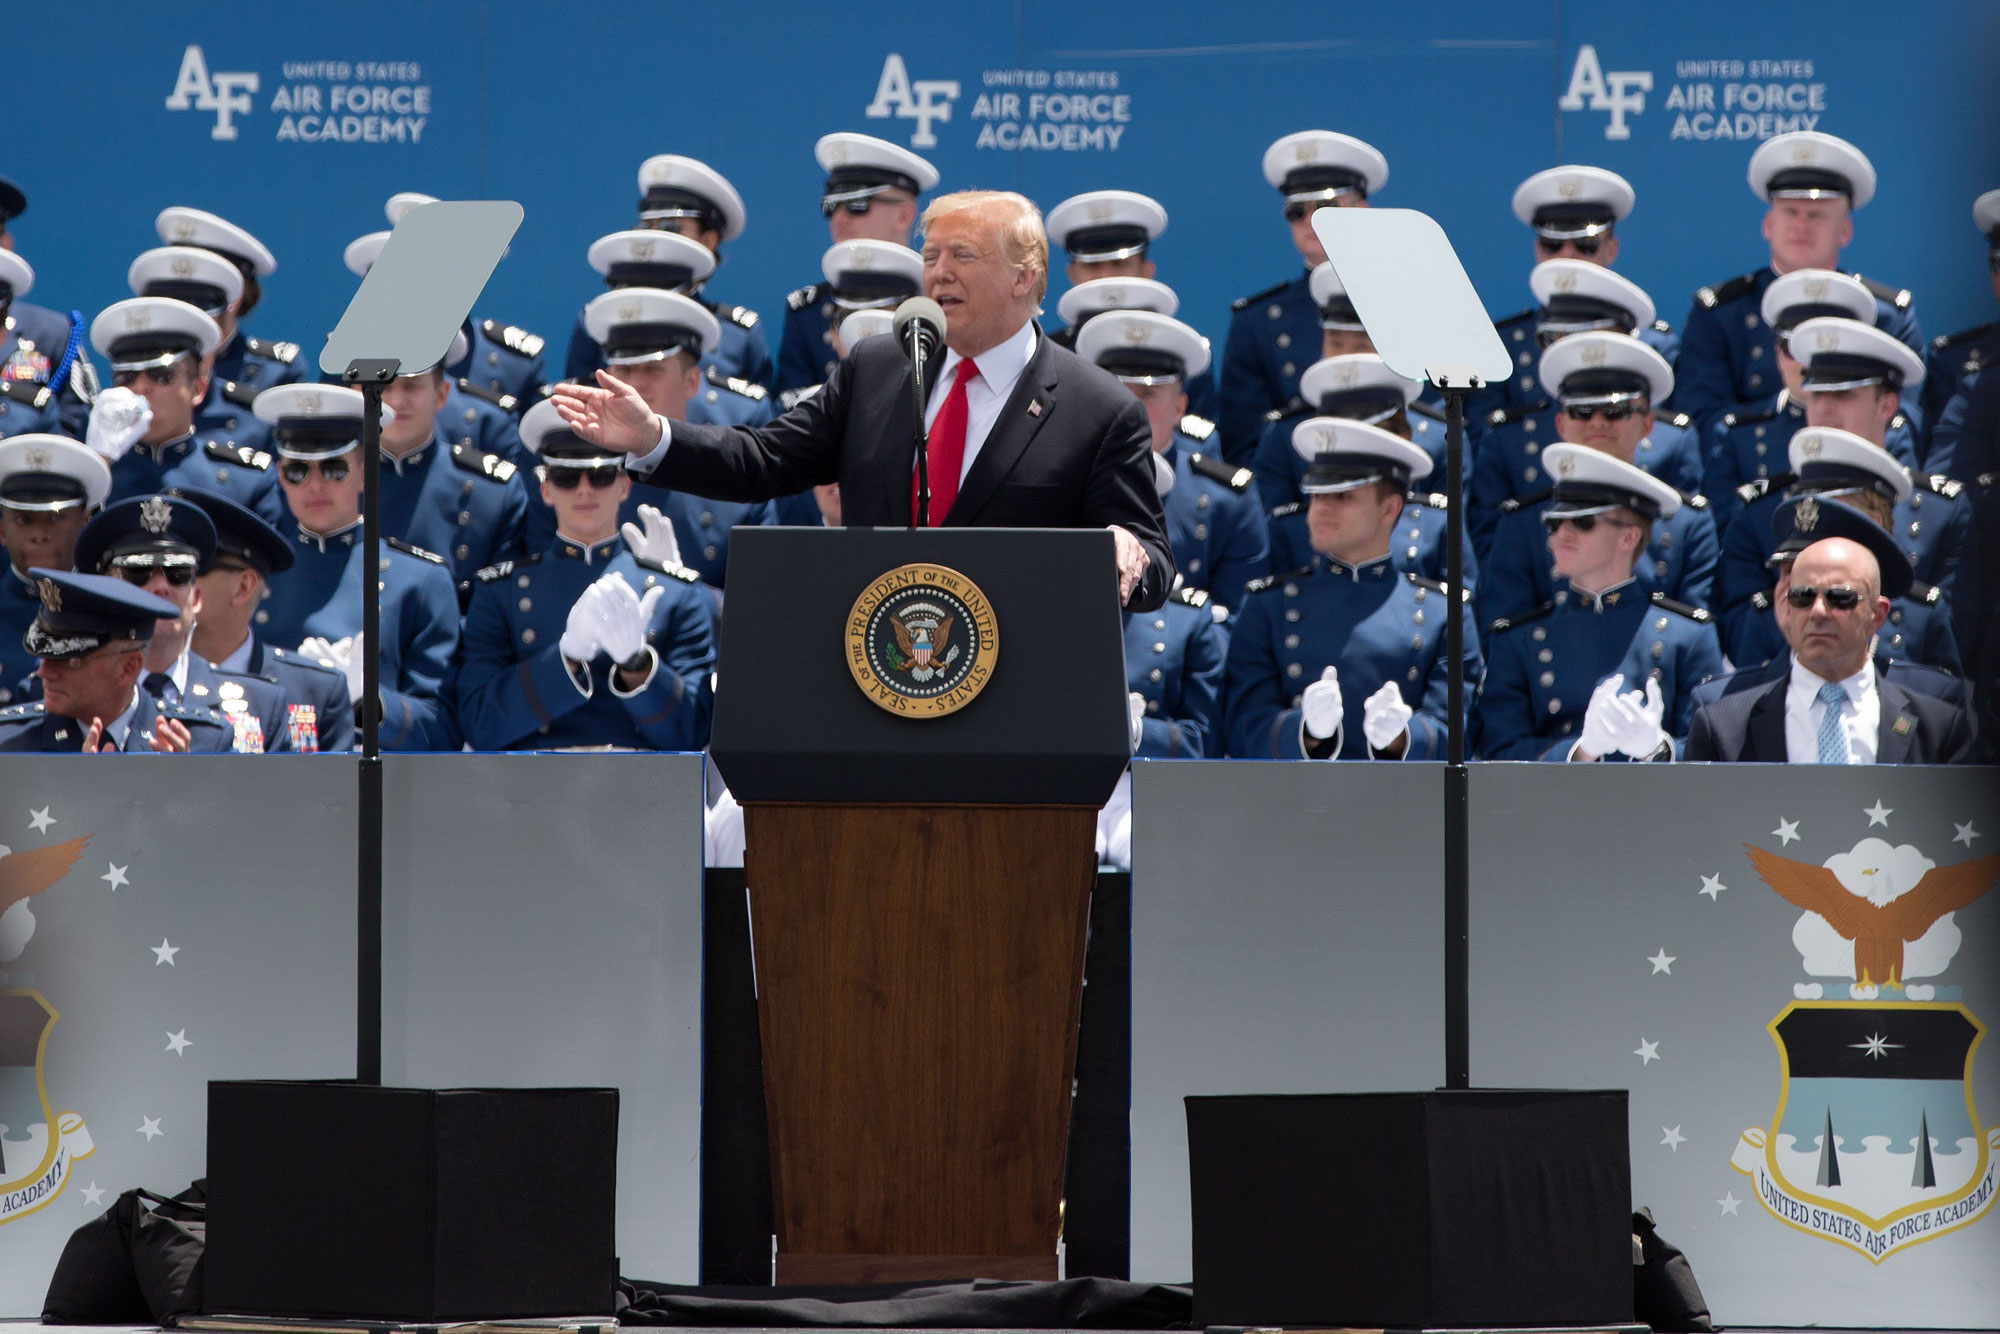 Photo: Trump speaks at Air Force Academy graduation